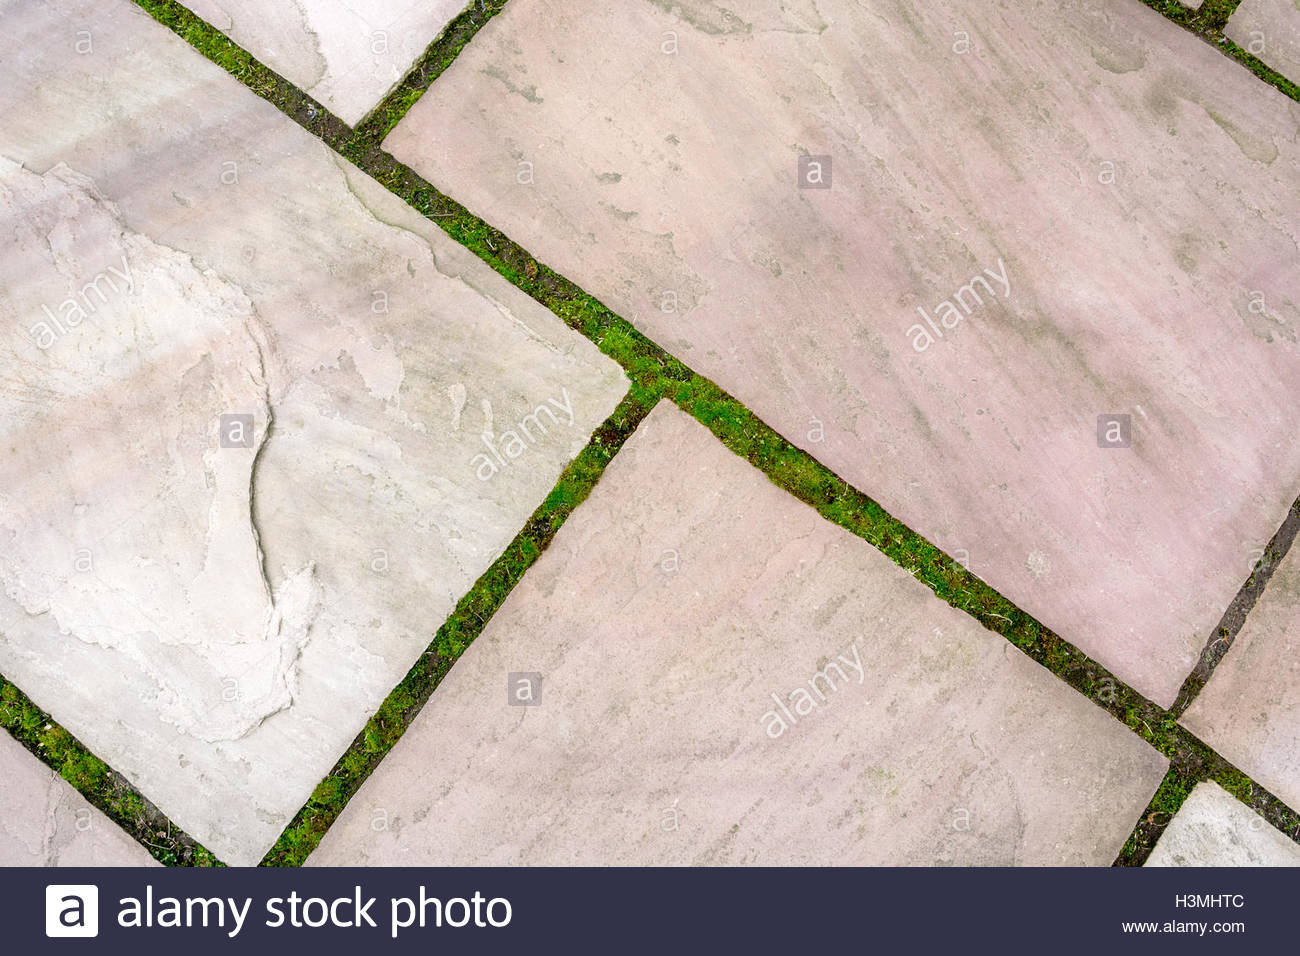 Patio with moss and weeds growing in gaps - Stock Image